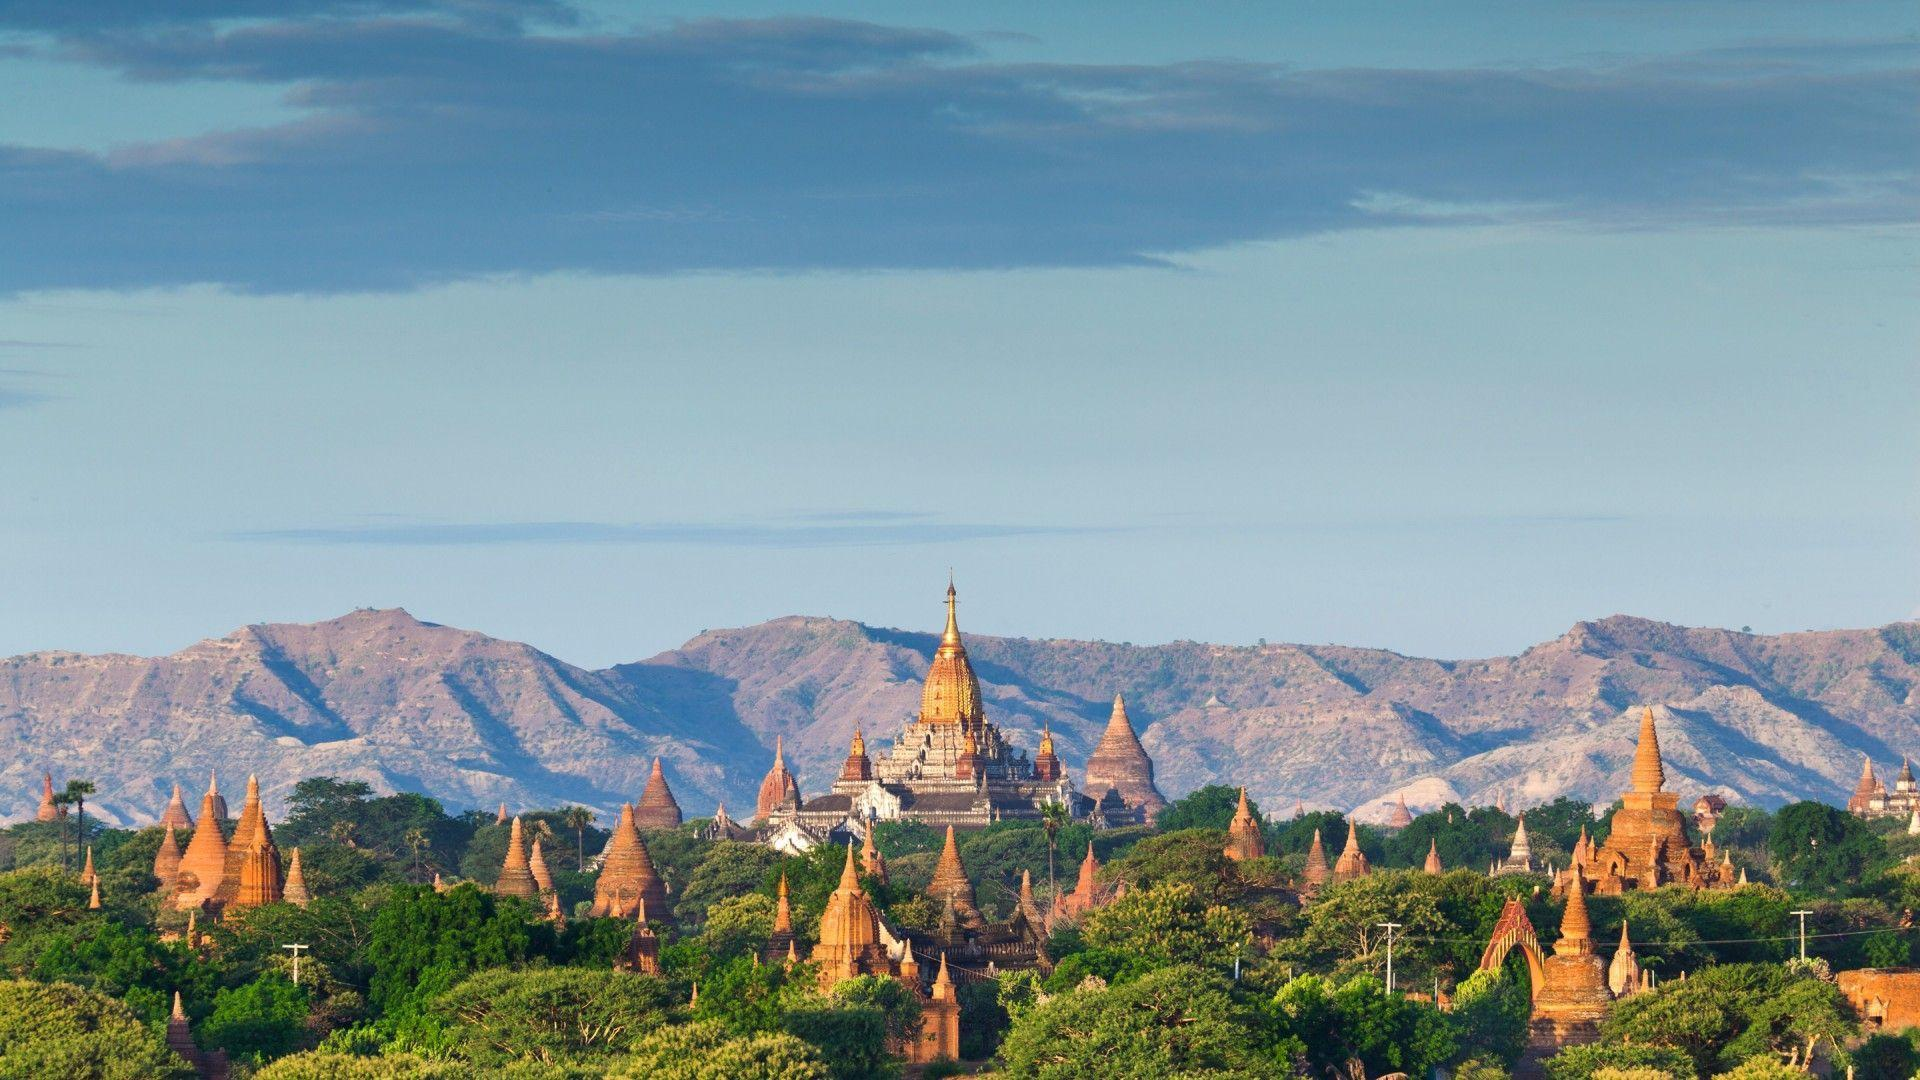 Wallpapers Bagan Temples In Myanmar Burma 1920x1080